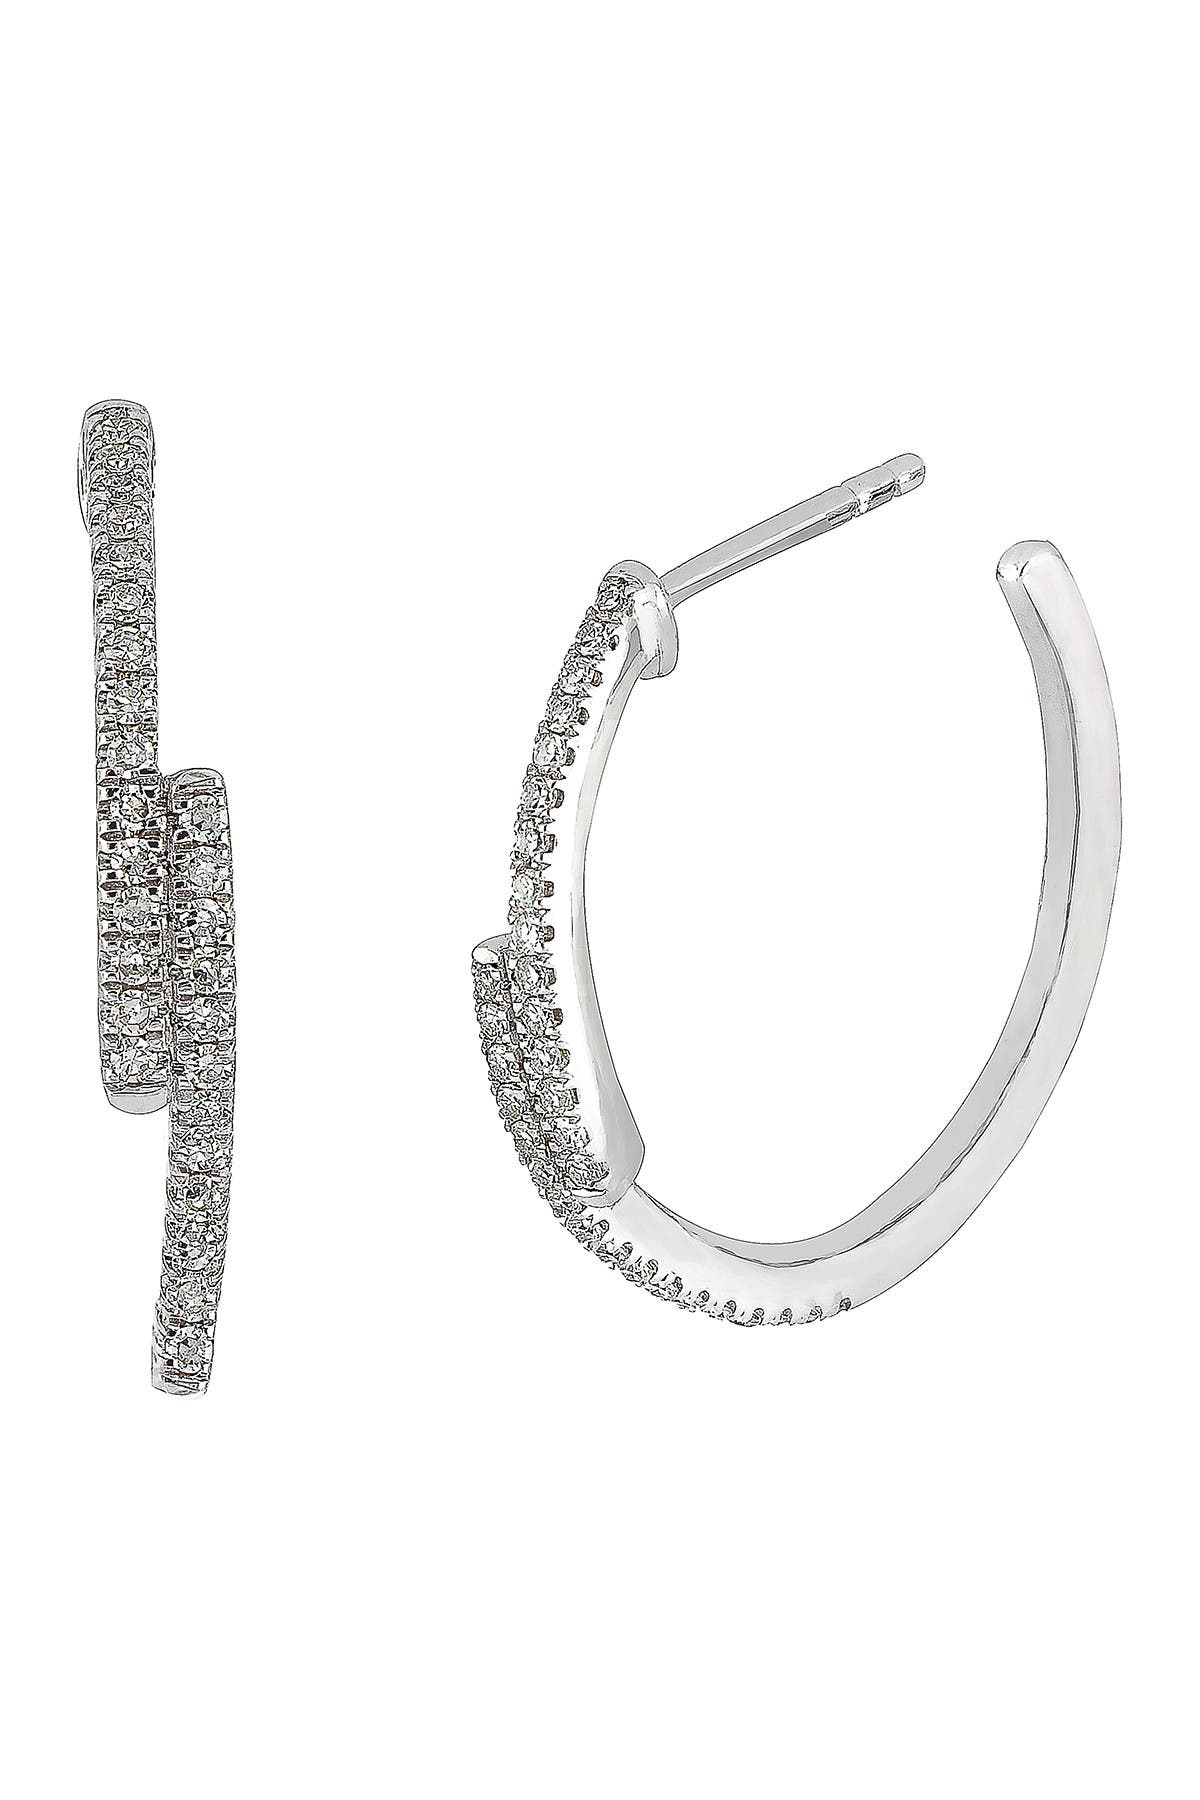 Image of Carriere Sterling Silver Pave Diamond Staggered Hoop Earrings - 0.20 ctw